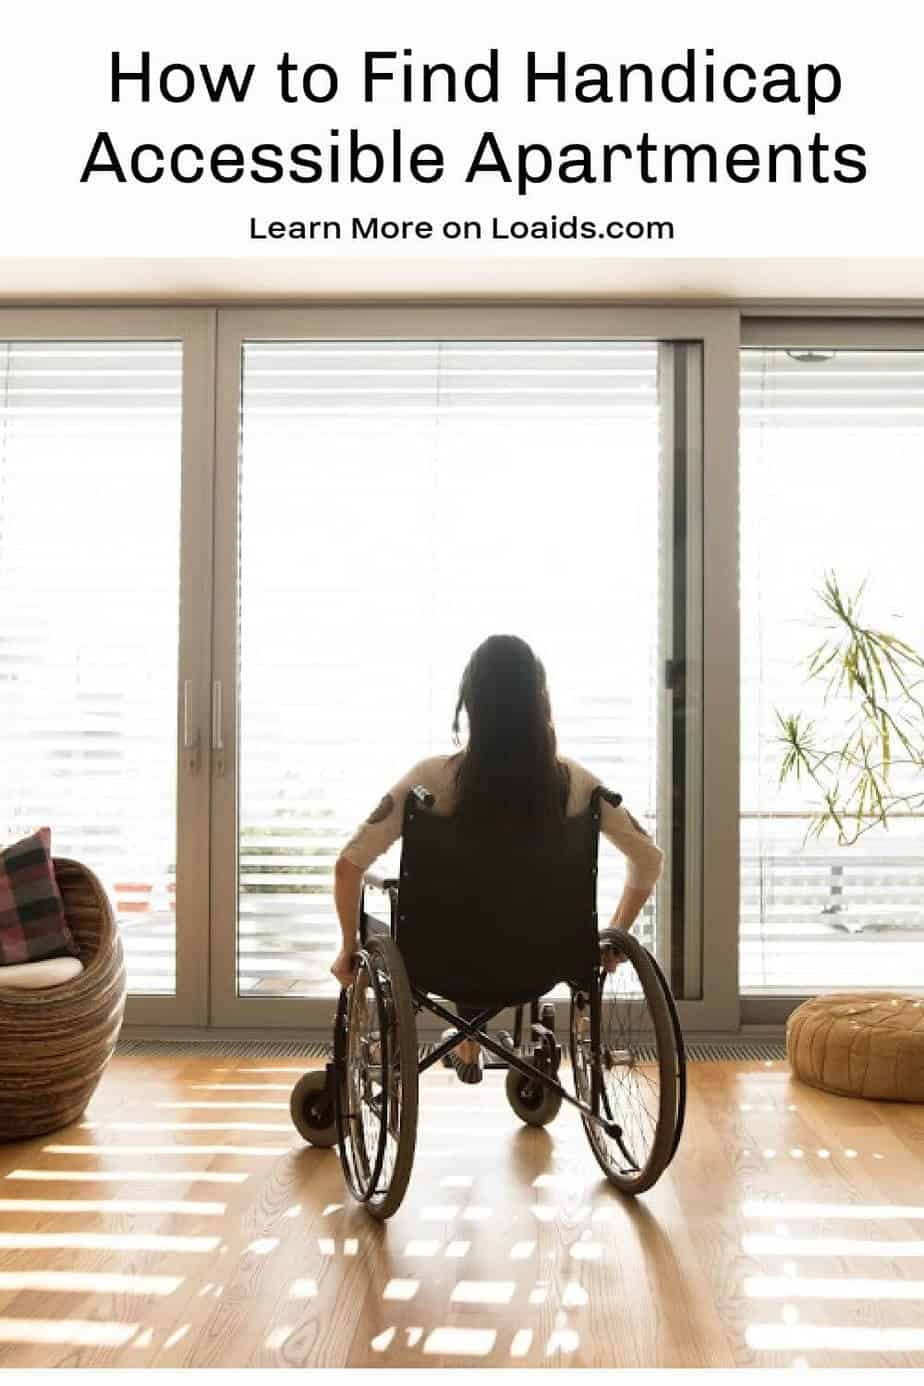 Wondering how to find handicap accessible apartments? Let us help! Check out our guide with expert tips that will help you find one the fastest and easiest way!